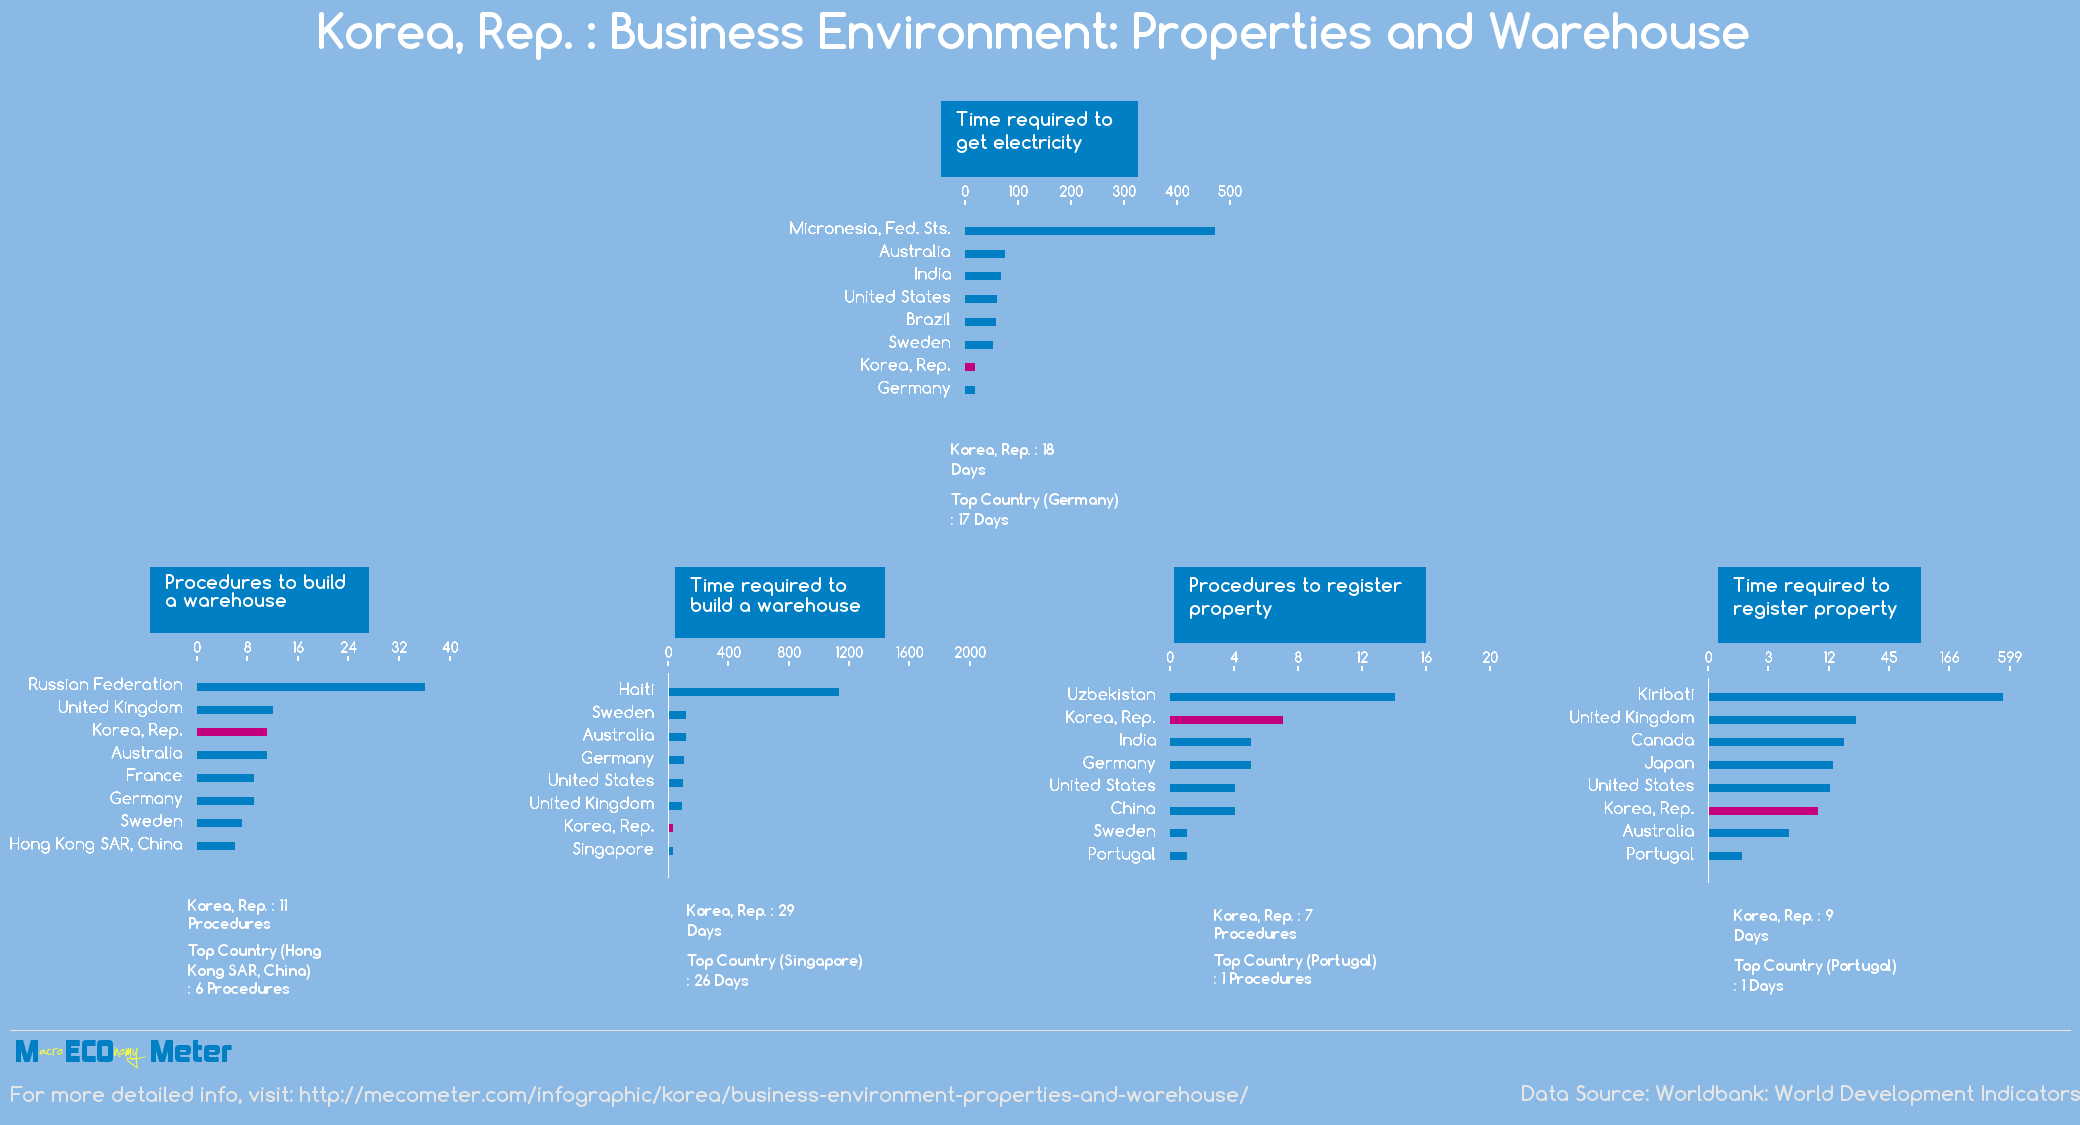 Korea, Rep. : Business Environment: Properties and Warehouse